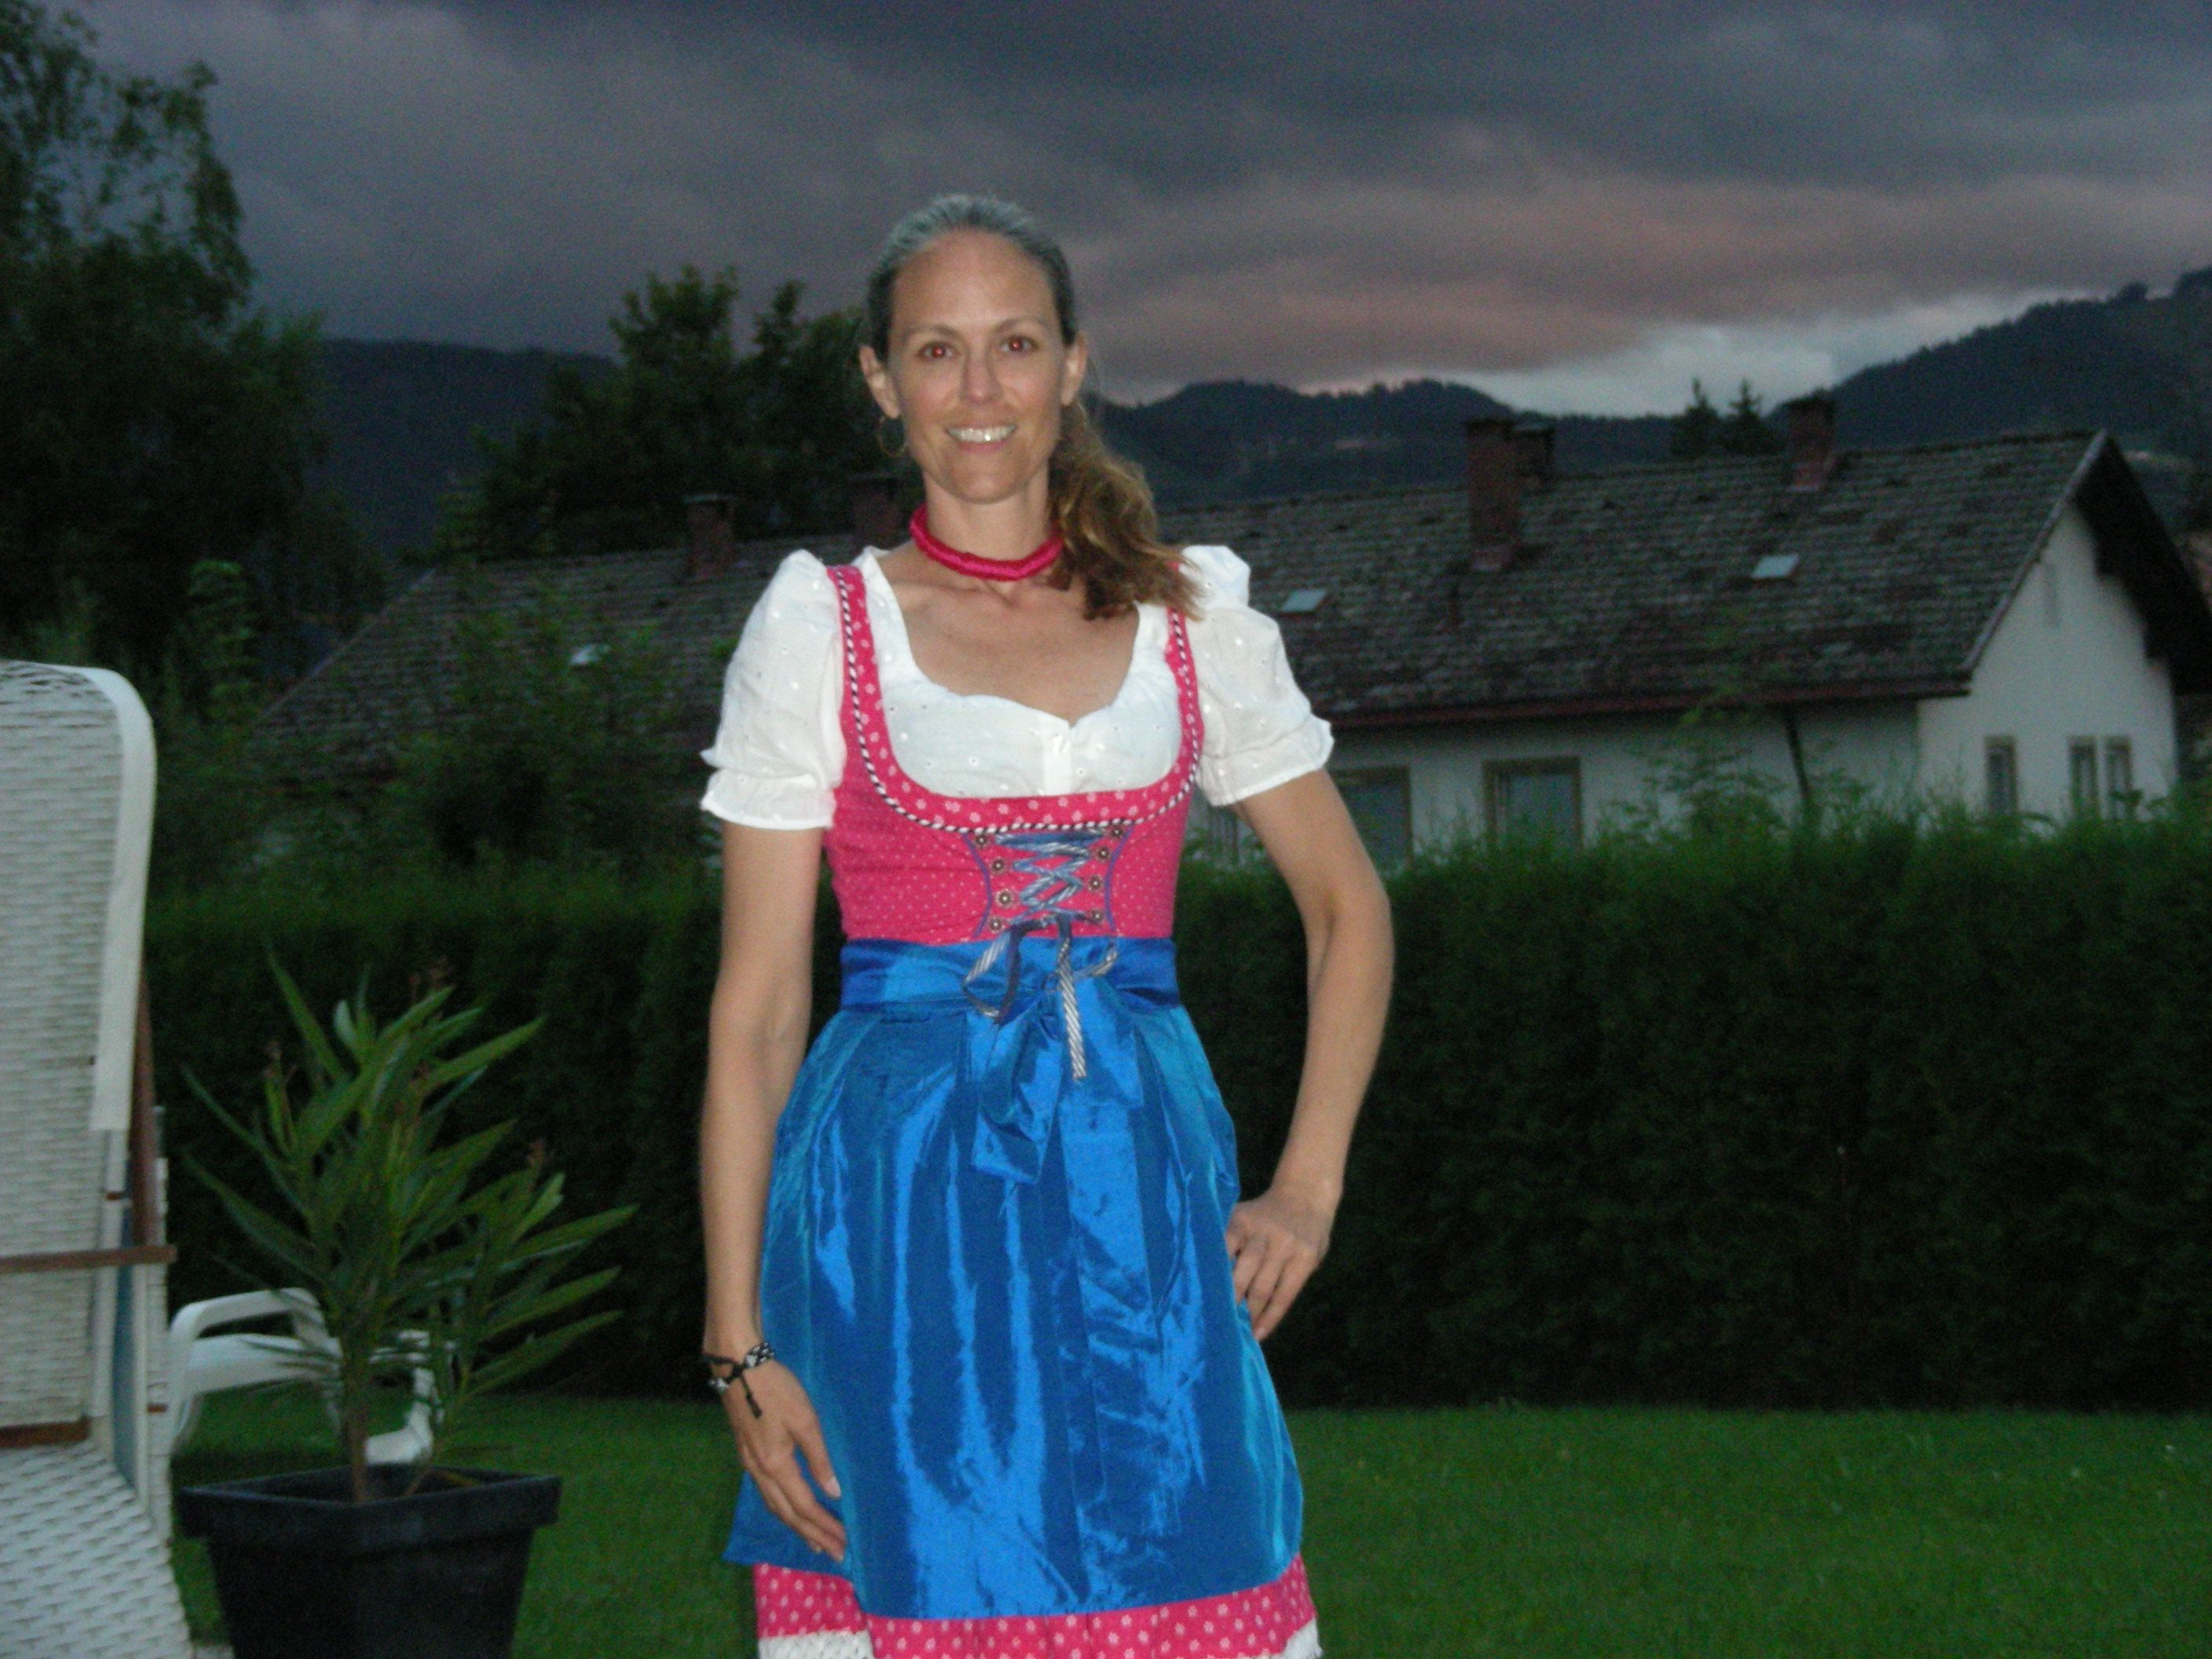 German Girls in Bavaria. Wow, look at that sky!